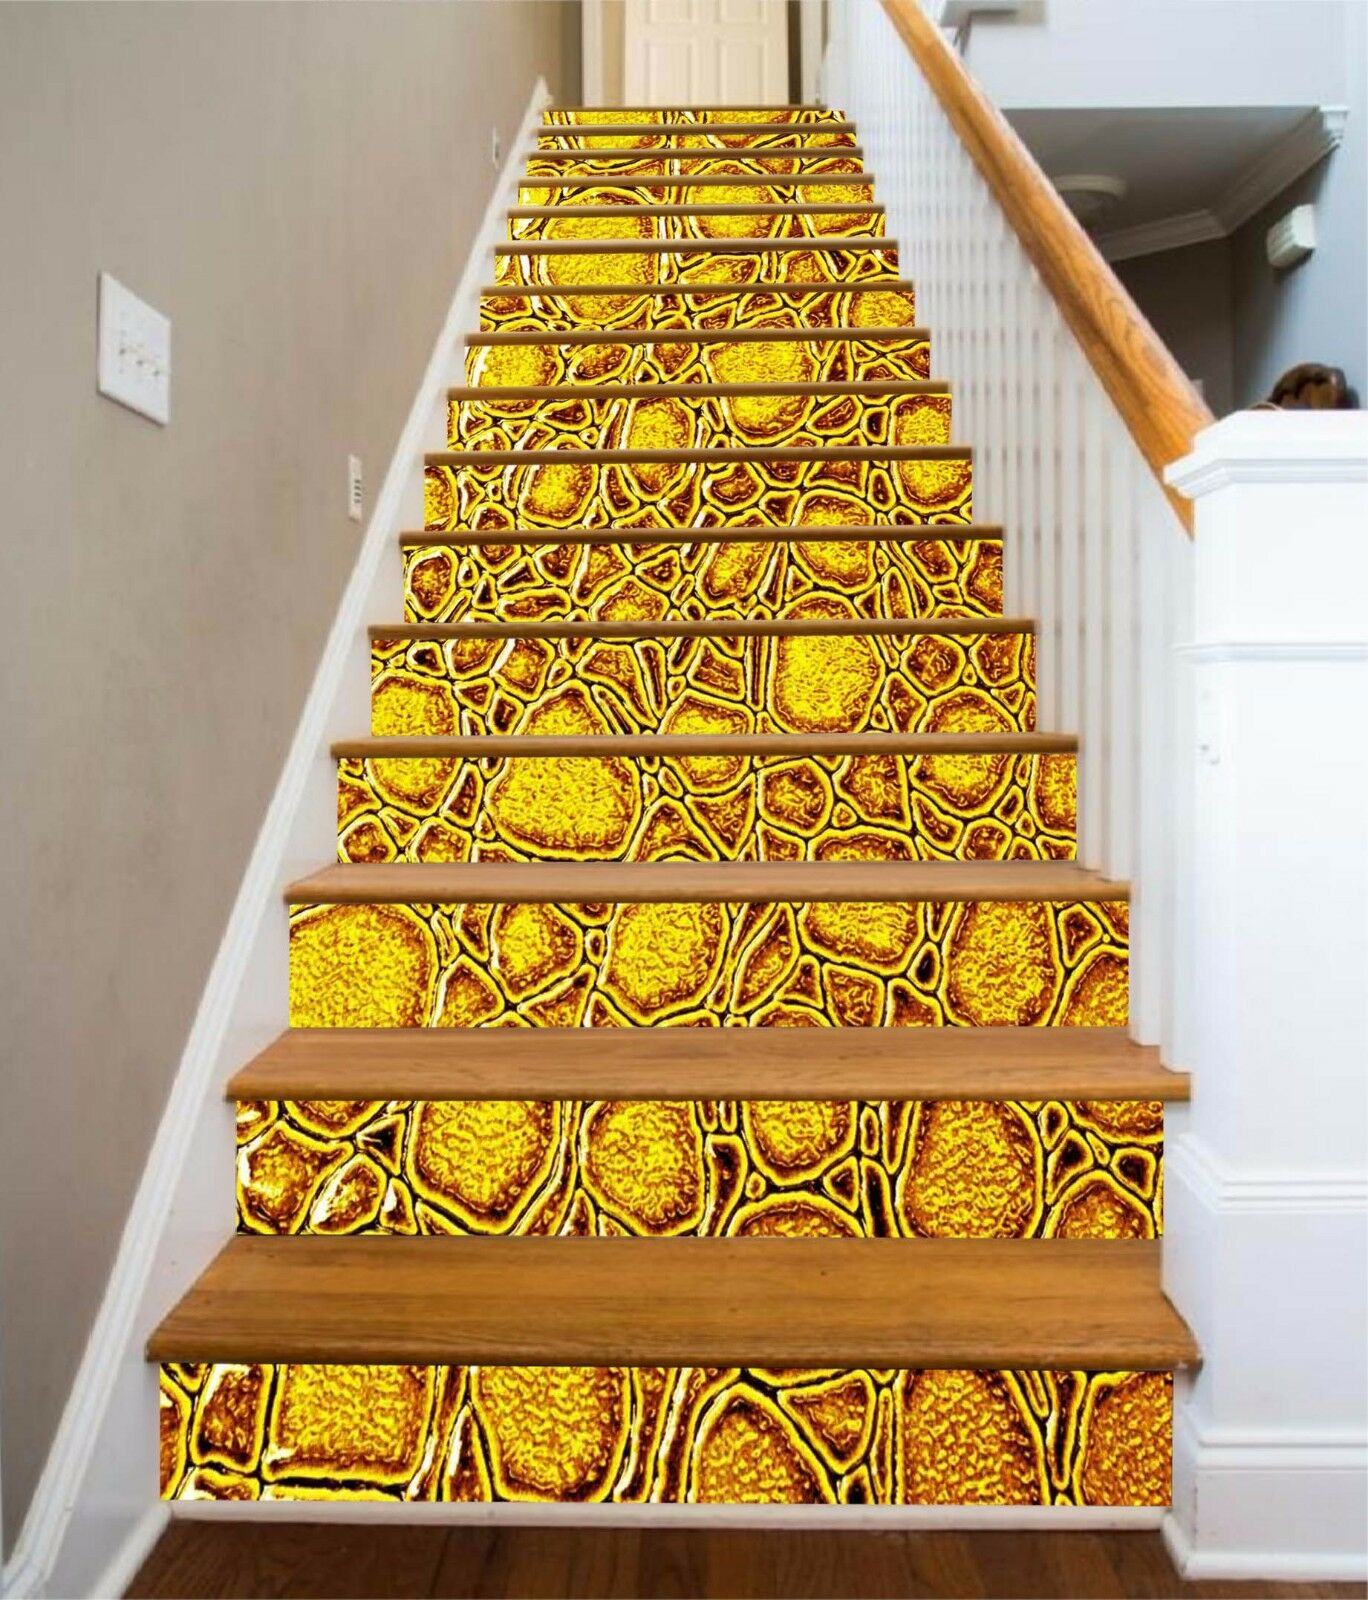 3D Shiny Pattern 36 Stair Risers Decoration Photo Mural Vinyl Decal Wallpaper AU